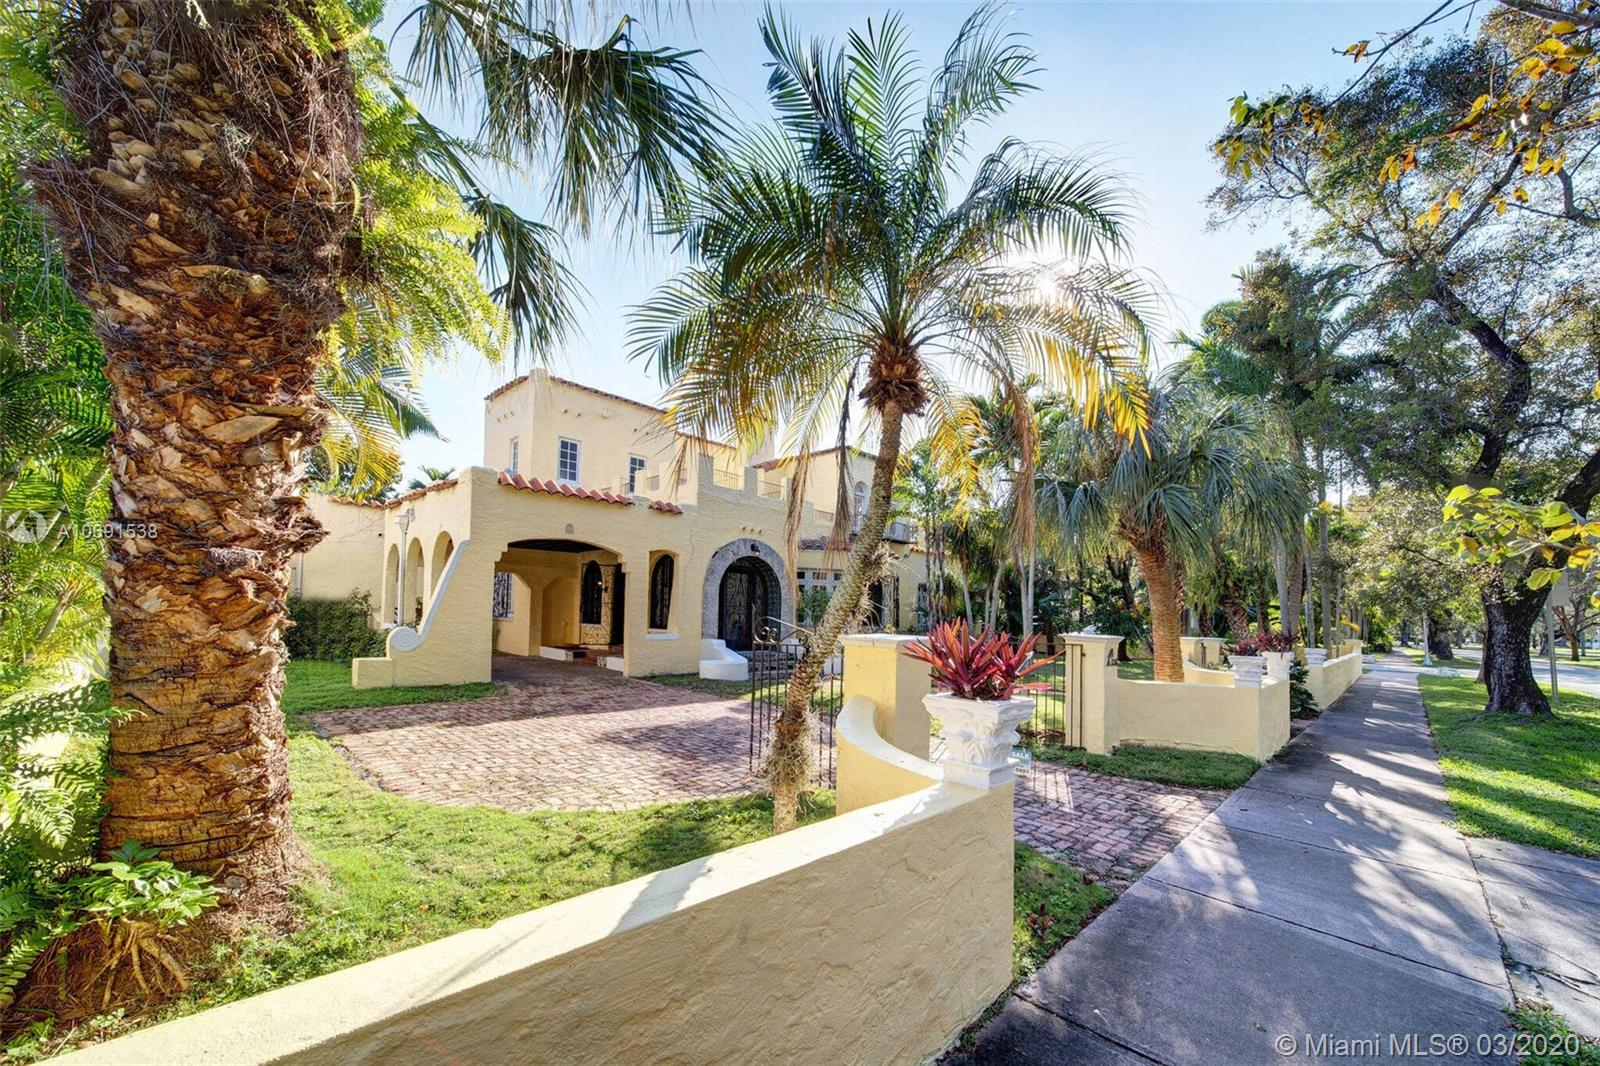 $100,000 price reduction, $30,000 new roof, House just tented. Owners want offers! Must see!Beautiful 1923 old Gables Gem ready for your Personal touch! Investors dream, 15,000 square ft. Lot on Alhambra Cr., Coral Gables corner lot, room for pool. Great lot!5 bedroom, 4 baths, 4000 square ft. Lots of closet space.  Rehabbed in 1995, needs updating. Great opportunity!Close to Granada Golf Course.